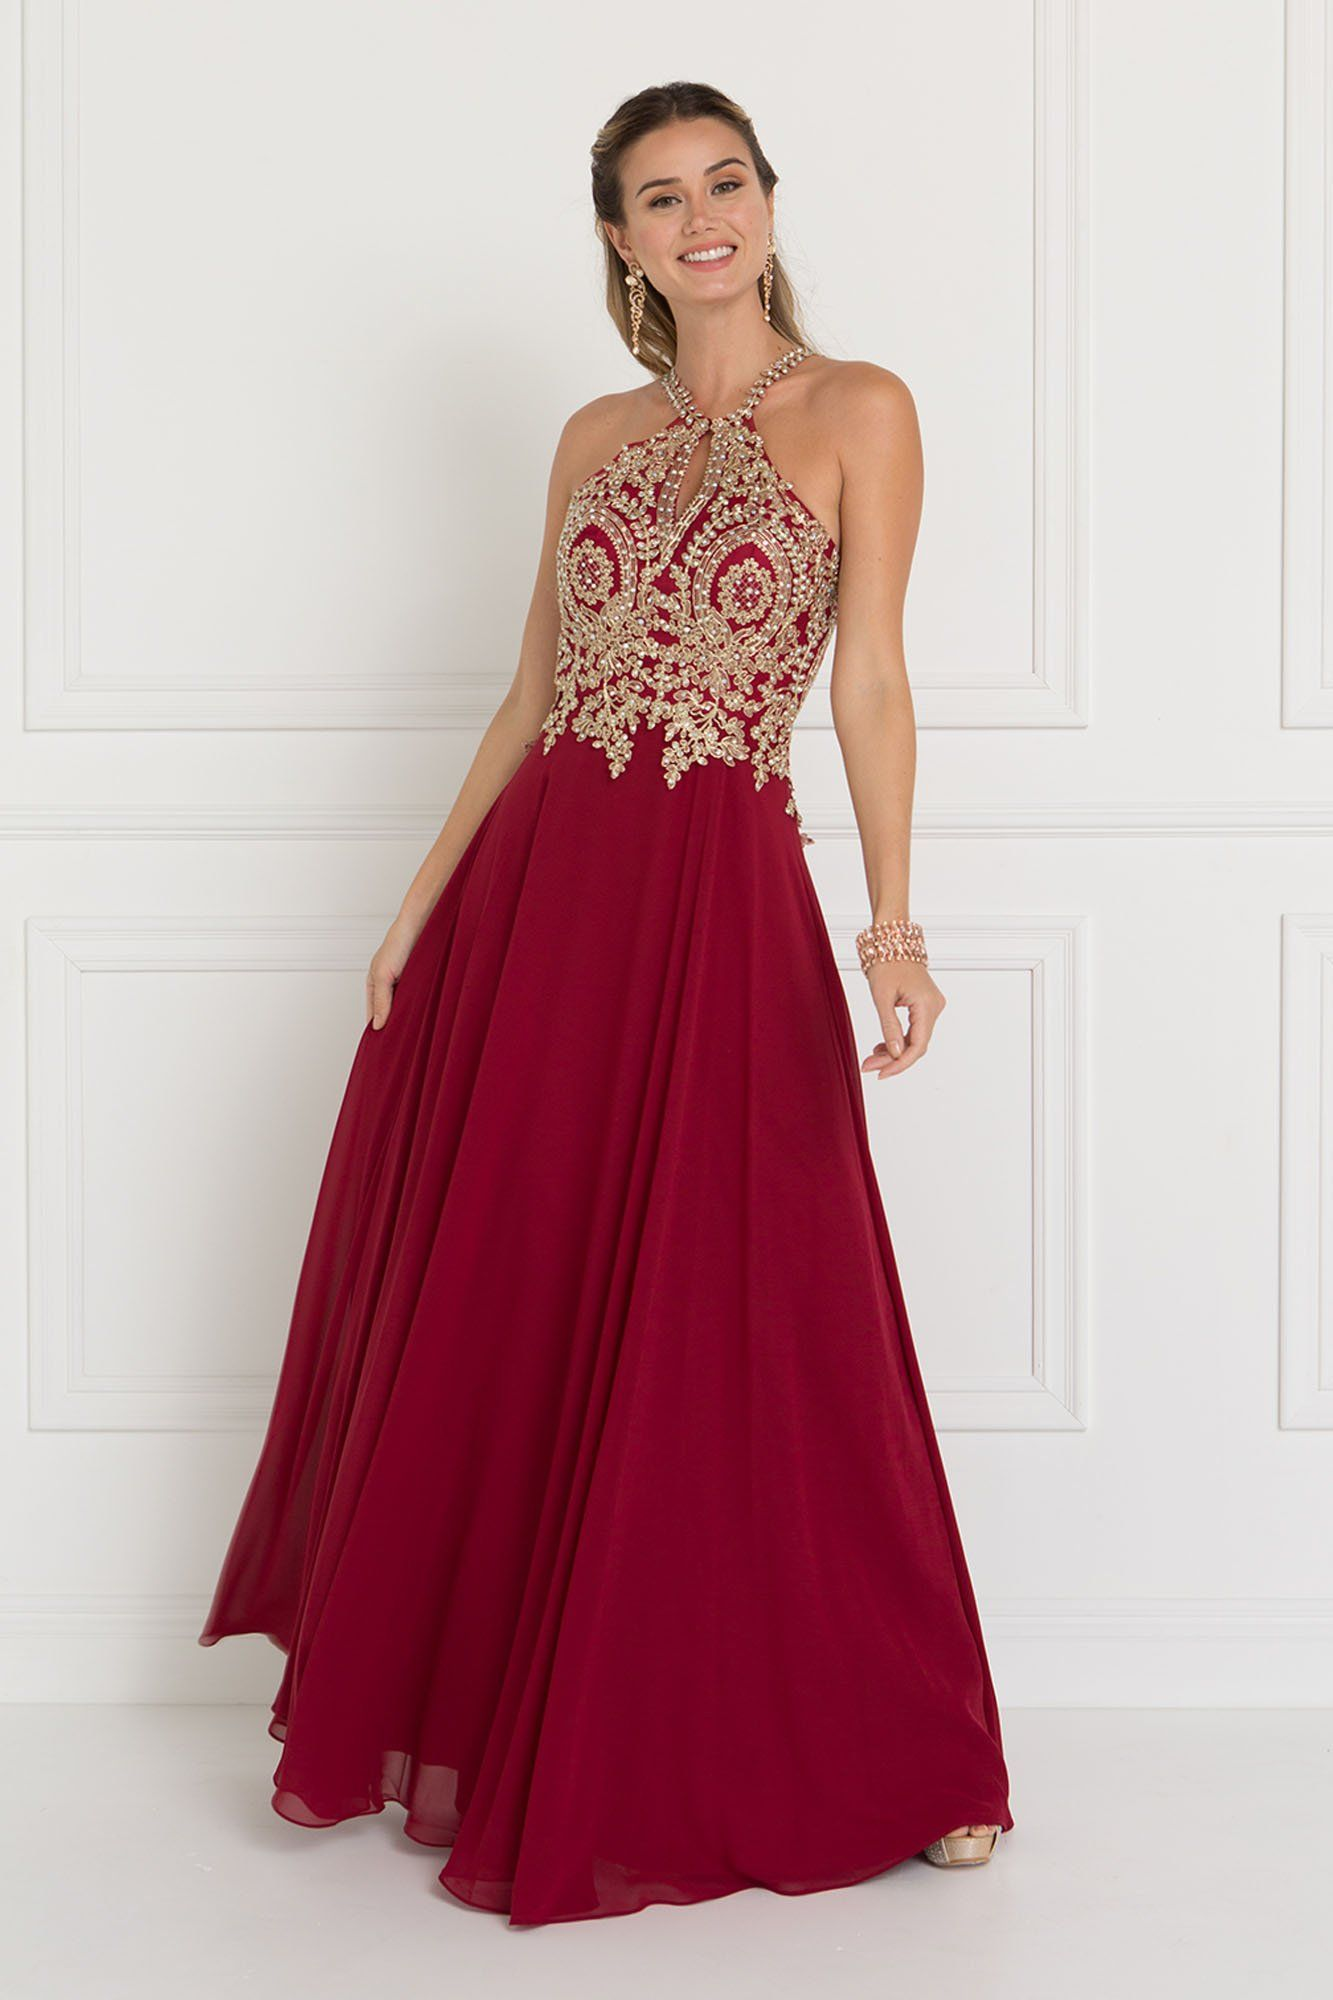 aafde35081d6 Burgundy long prom dress GLS 1526 in 2019 | Products | Prom dresses ...